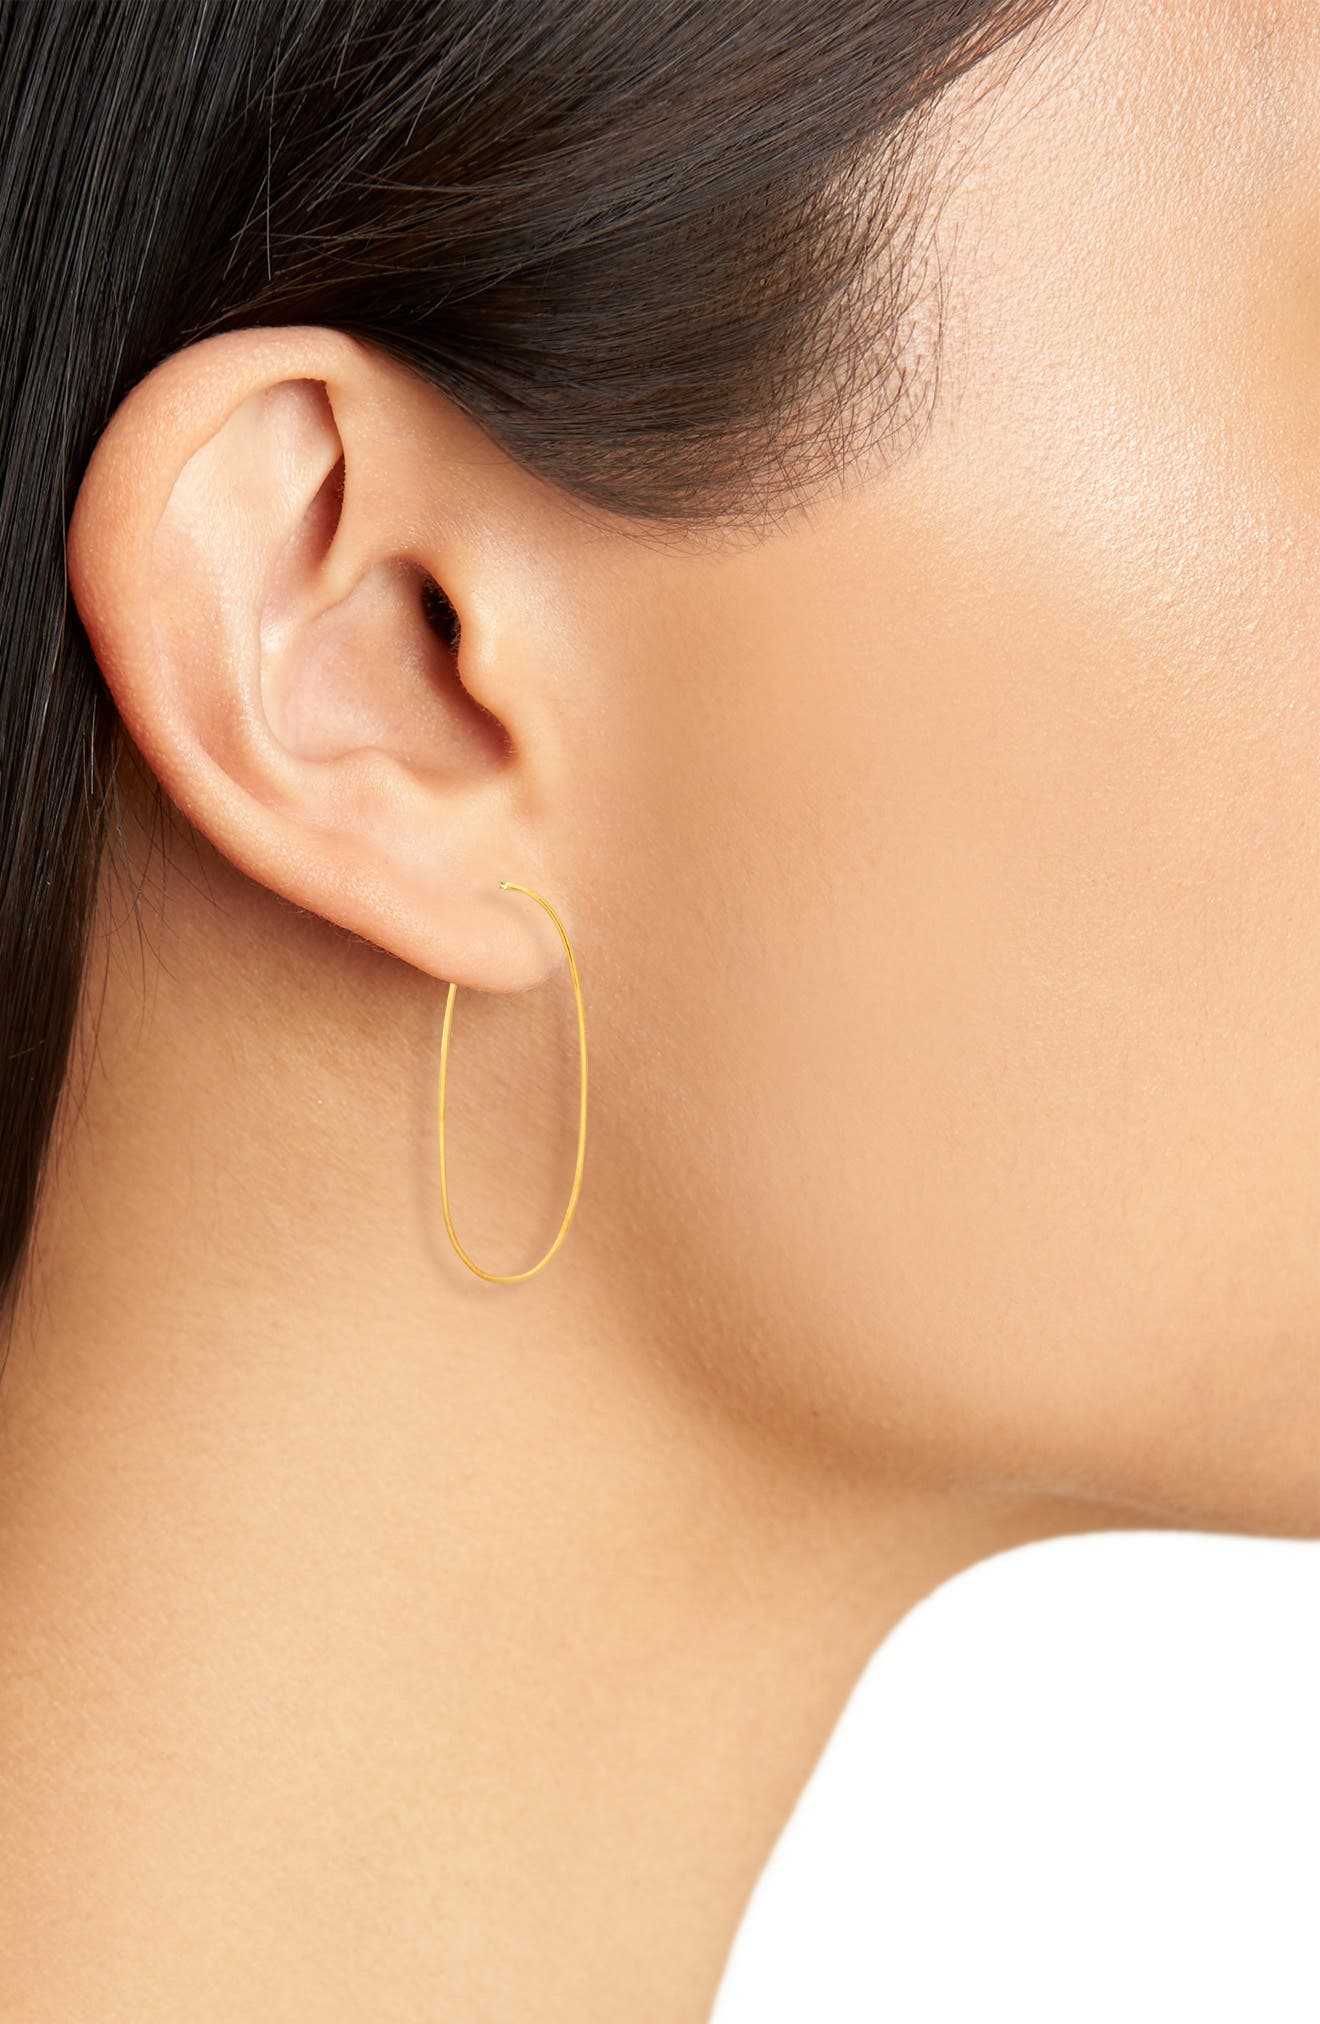 Flat Long Oval Hoop Earrings,                             Alternate thumbnail 2, color,                             Yellow Gold